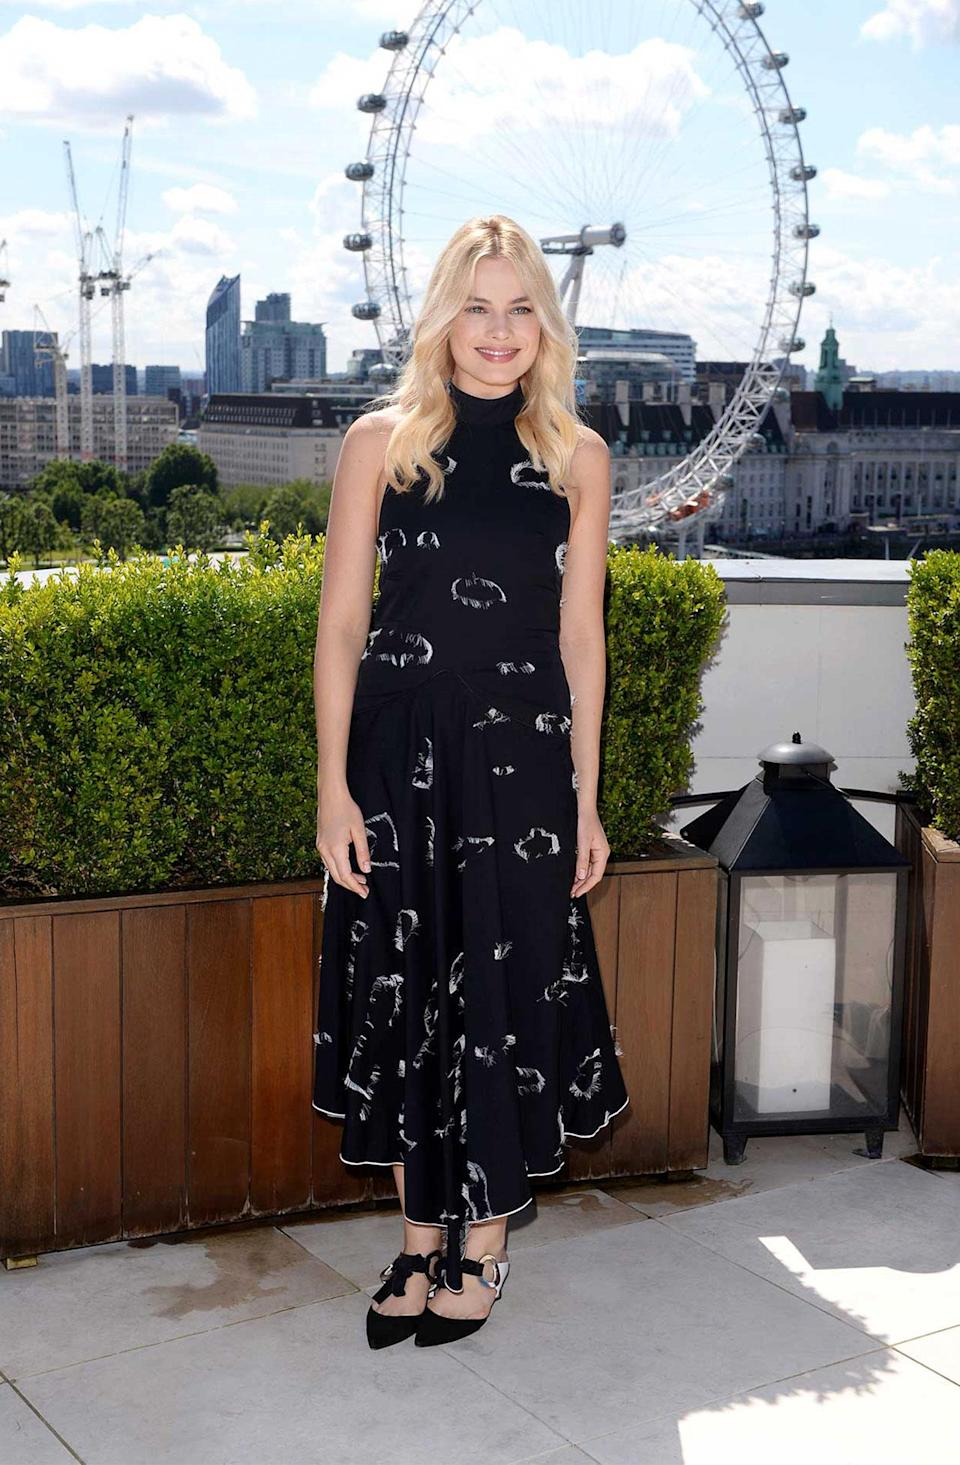 """<h2>In Proenza Schouler</h2> <p>At the photo call for <em>The Legend Of Tarzan</em> in London, 2016</p> <h4>Getty Images</h4> <p> <strong>Related Articles</strong> <ul> <li><a rel=""""nofollow noopener"""" href=""""http://thezoereport.com/fashion/style-tips/box-of-style-ways-to-wear-cape-trend/?utm_source=yahoo&utm_medium=syndication"""" target=""""_blank"""" data-ylk=""""slk:The Key Styling Piece Your Wardrobe Needs"""" class=""""link rapid-noclick-resp"""">The Key Styling Piece Your Wardrobe Needs</a></li><li><a rel=""""nofollow noopener"""" href=""""http://thezoereport.com/fashion/shopping/everything-need-let-zoe-giveaway/?utm_source=yahoo&utm_medium=syndication"""" target=""""_blank"""" data-ylk=""""slk:Everything You Need From Our Let It Zoe Giveaway"""" class=""""link rapid-noclick-resp"""">Everything You Need From Our Let It Zoe Giveaway</a></li><li><a rel=""""nofollow noopener"""" href=""""http://thezoereport.com/beauty/celebrity-beauty/josephine-skriver-makeup-tutorial-video-vogue/?utm_source=yahoo&utm_medium=syndication"""" target=""""_blank"""" data-ylk=""""slk:A Victoria's Secret Model Shows Us How To Get Our Lips To Her Level"""" class=""""link rapid-noclick-resp"""">A Victoria's Secret Model Shows Us How To Get Our Lips To Her Level</a></li> </ul> </p>"""